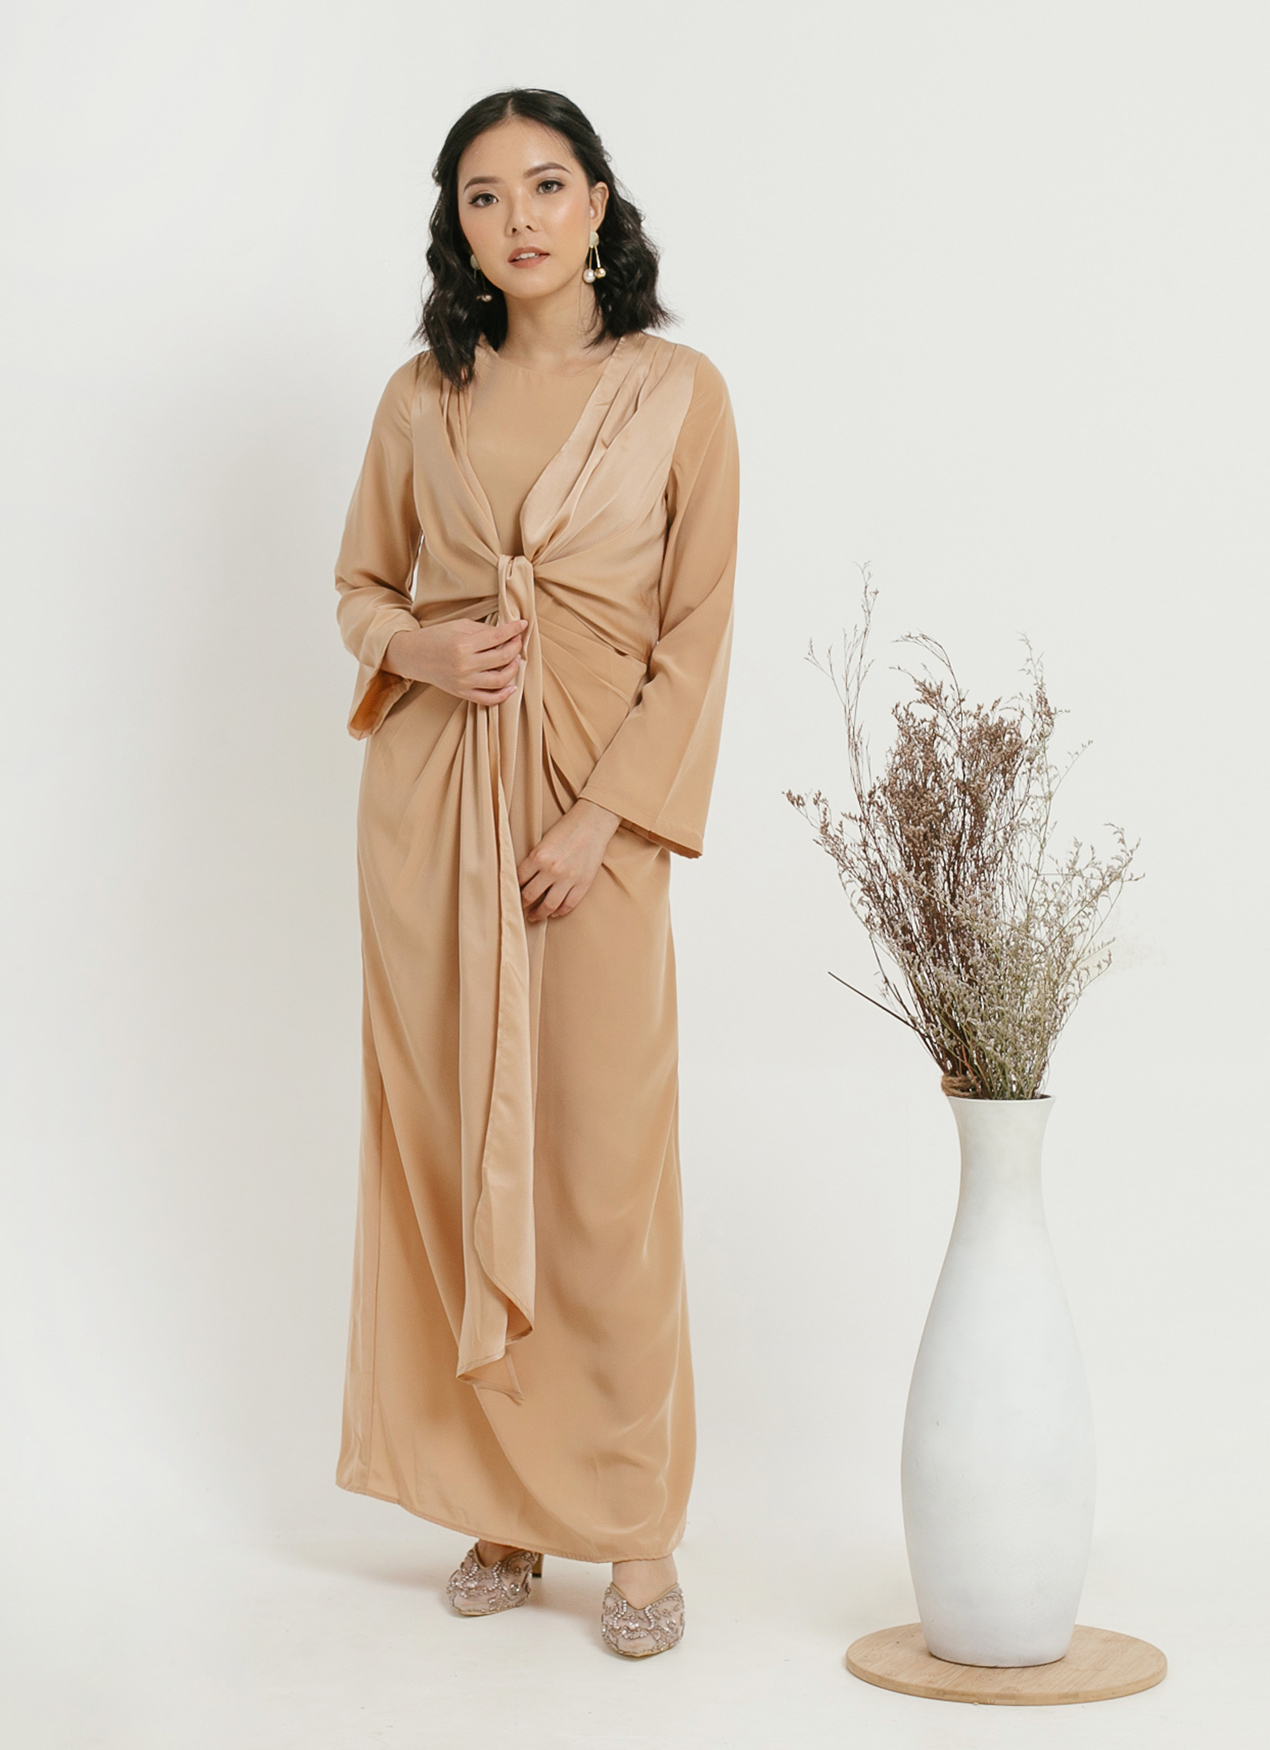 CLOTH INC Oona Gold Dress - Gold